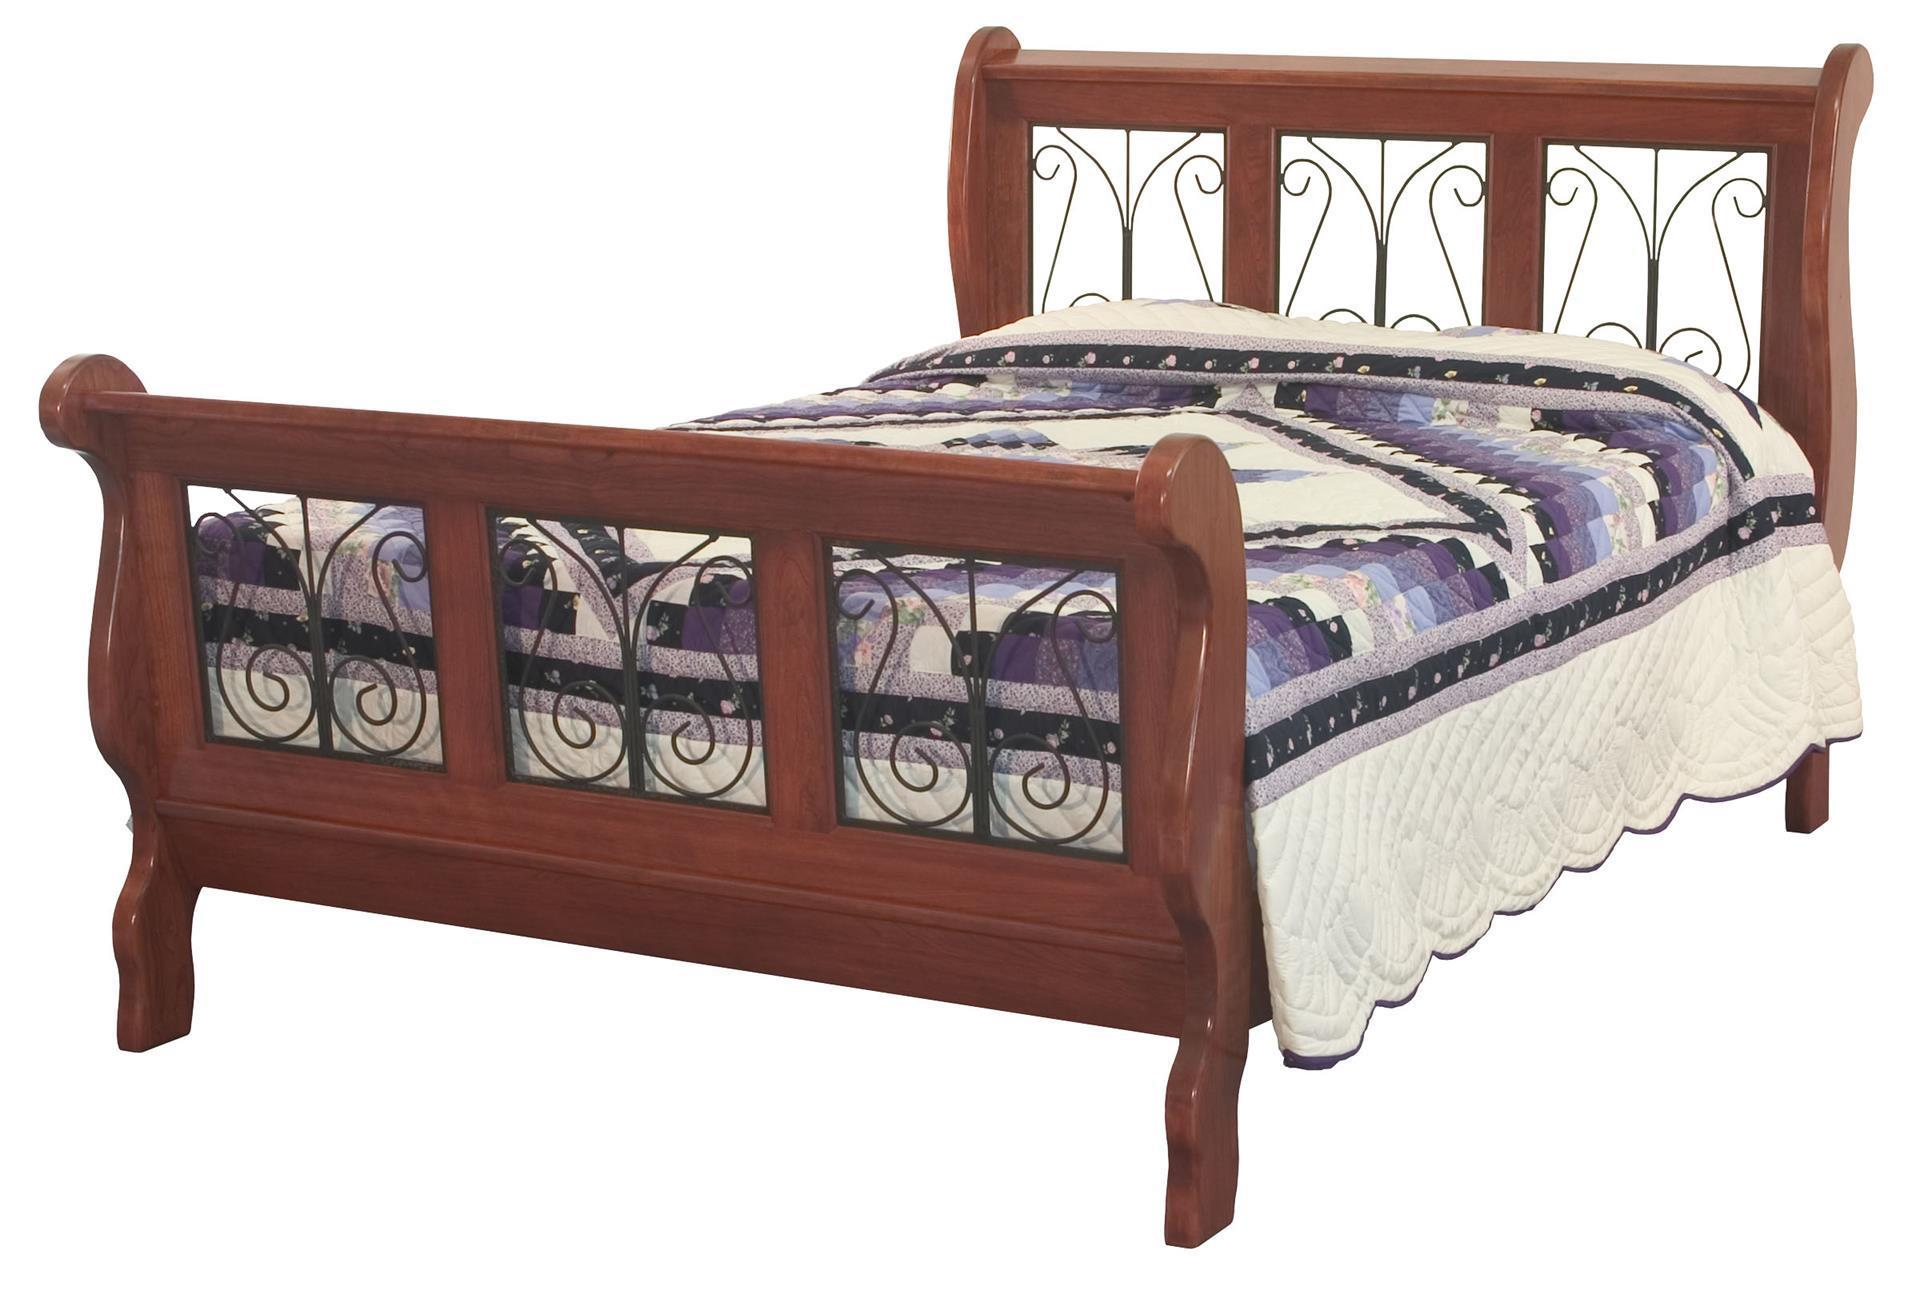 50 Kids Wrought Iron Bed Wrought Iron Queen Headboard: Amish Classic Wrought Iron Sleigh Bed From DutchCrafters Amish